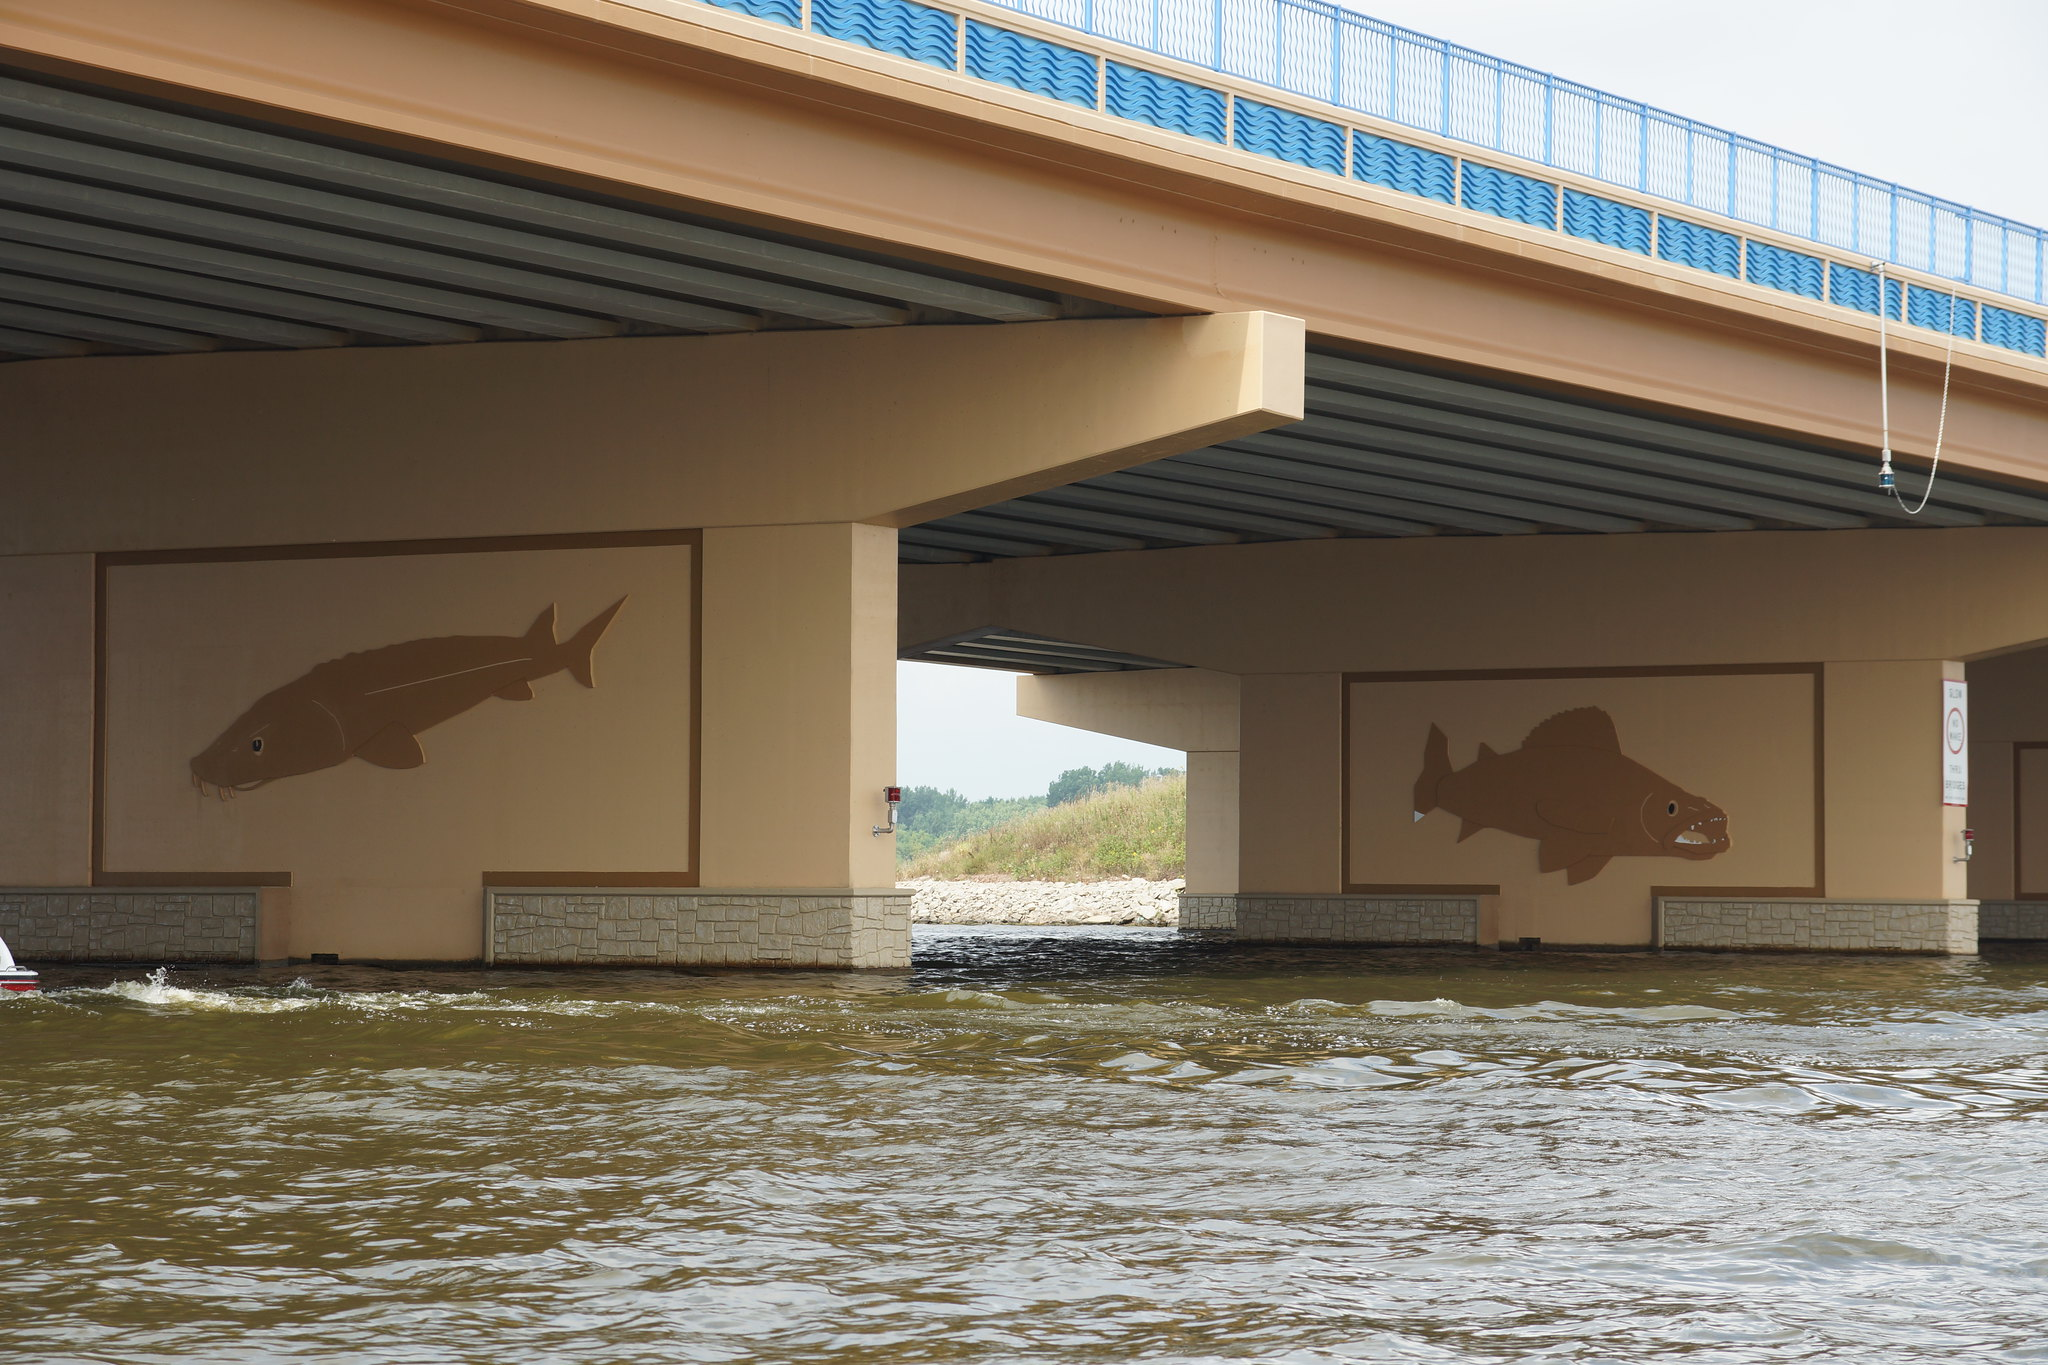 Hwy 41 bridge murals